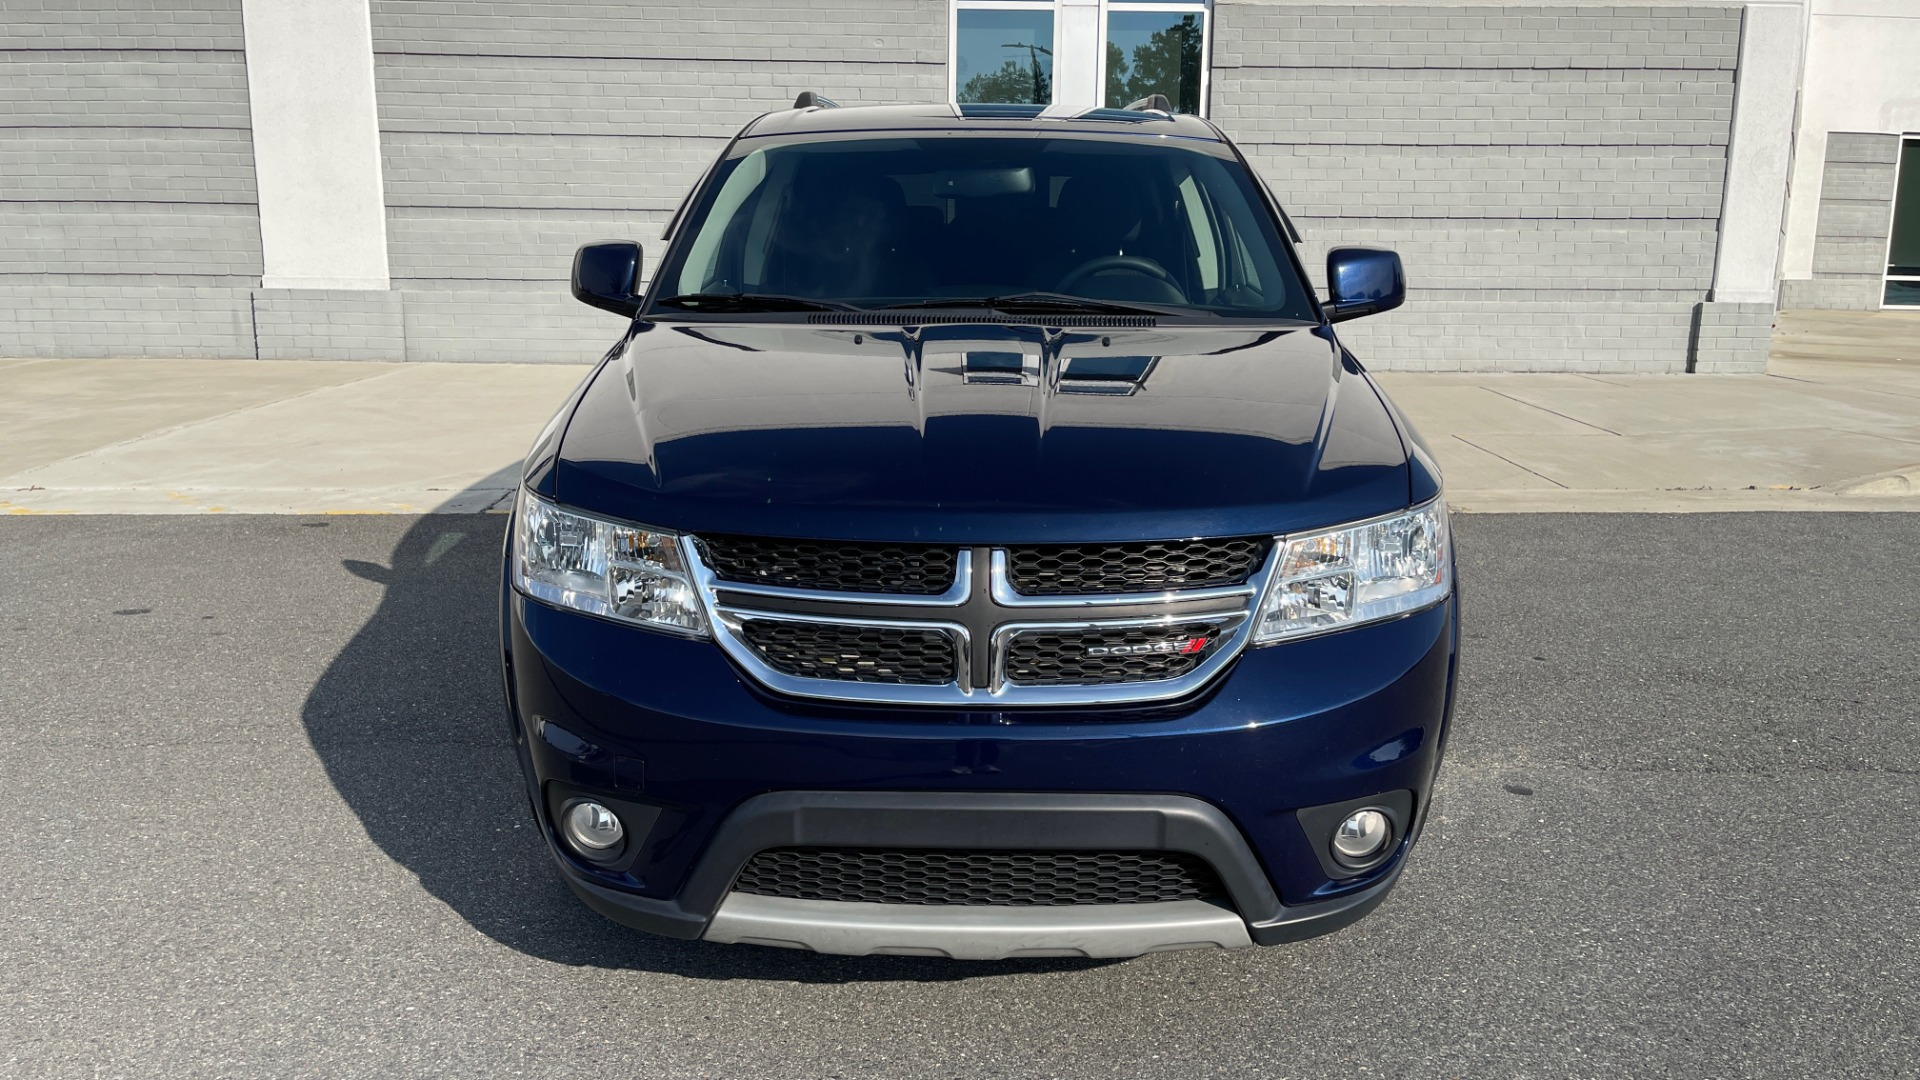 Used 2017 Dodge JOURNEY SXT PREMIUM / 2.4L / 4-SPD AUTO / KEYLESS-GO / 3-ROW / 19IN WHEELS for sale $15,995 at Formula Imports in Charlotte NC 28227 11